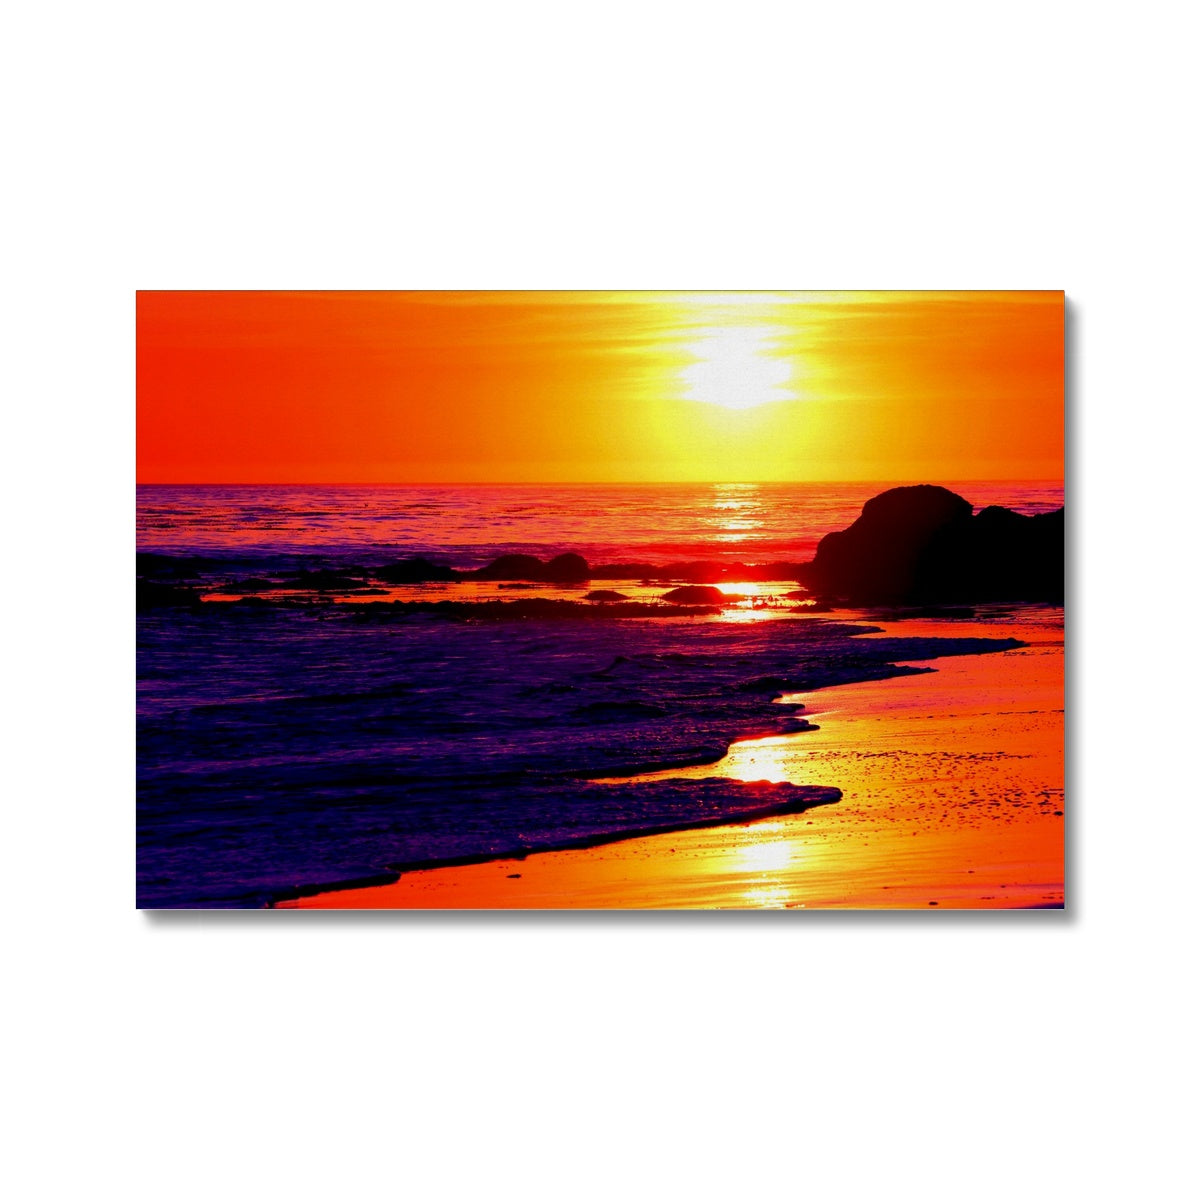 Sunset Dreams - California - Canvas